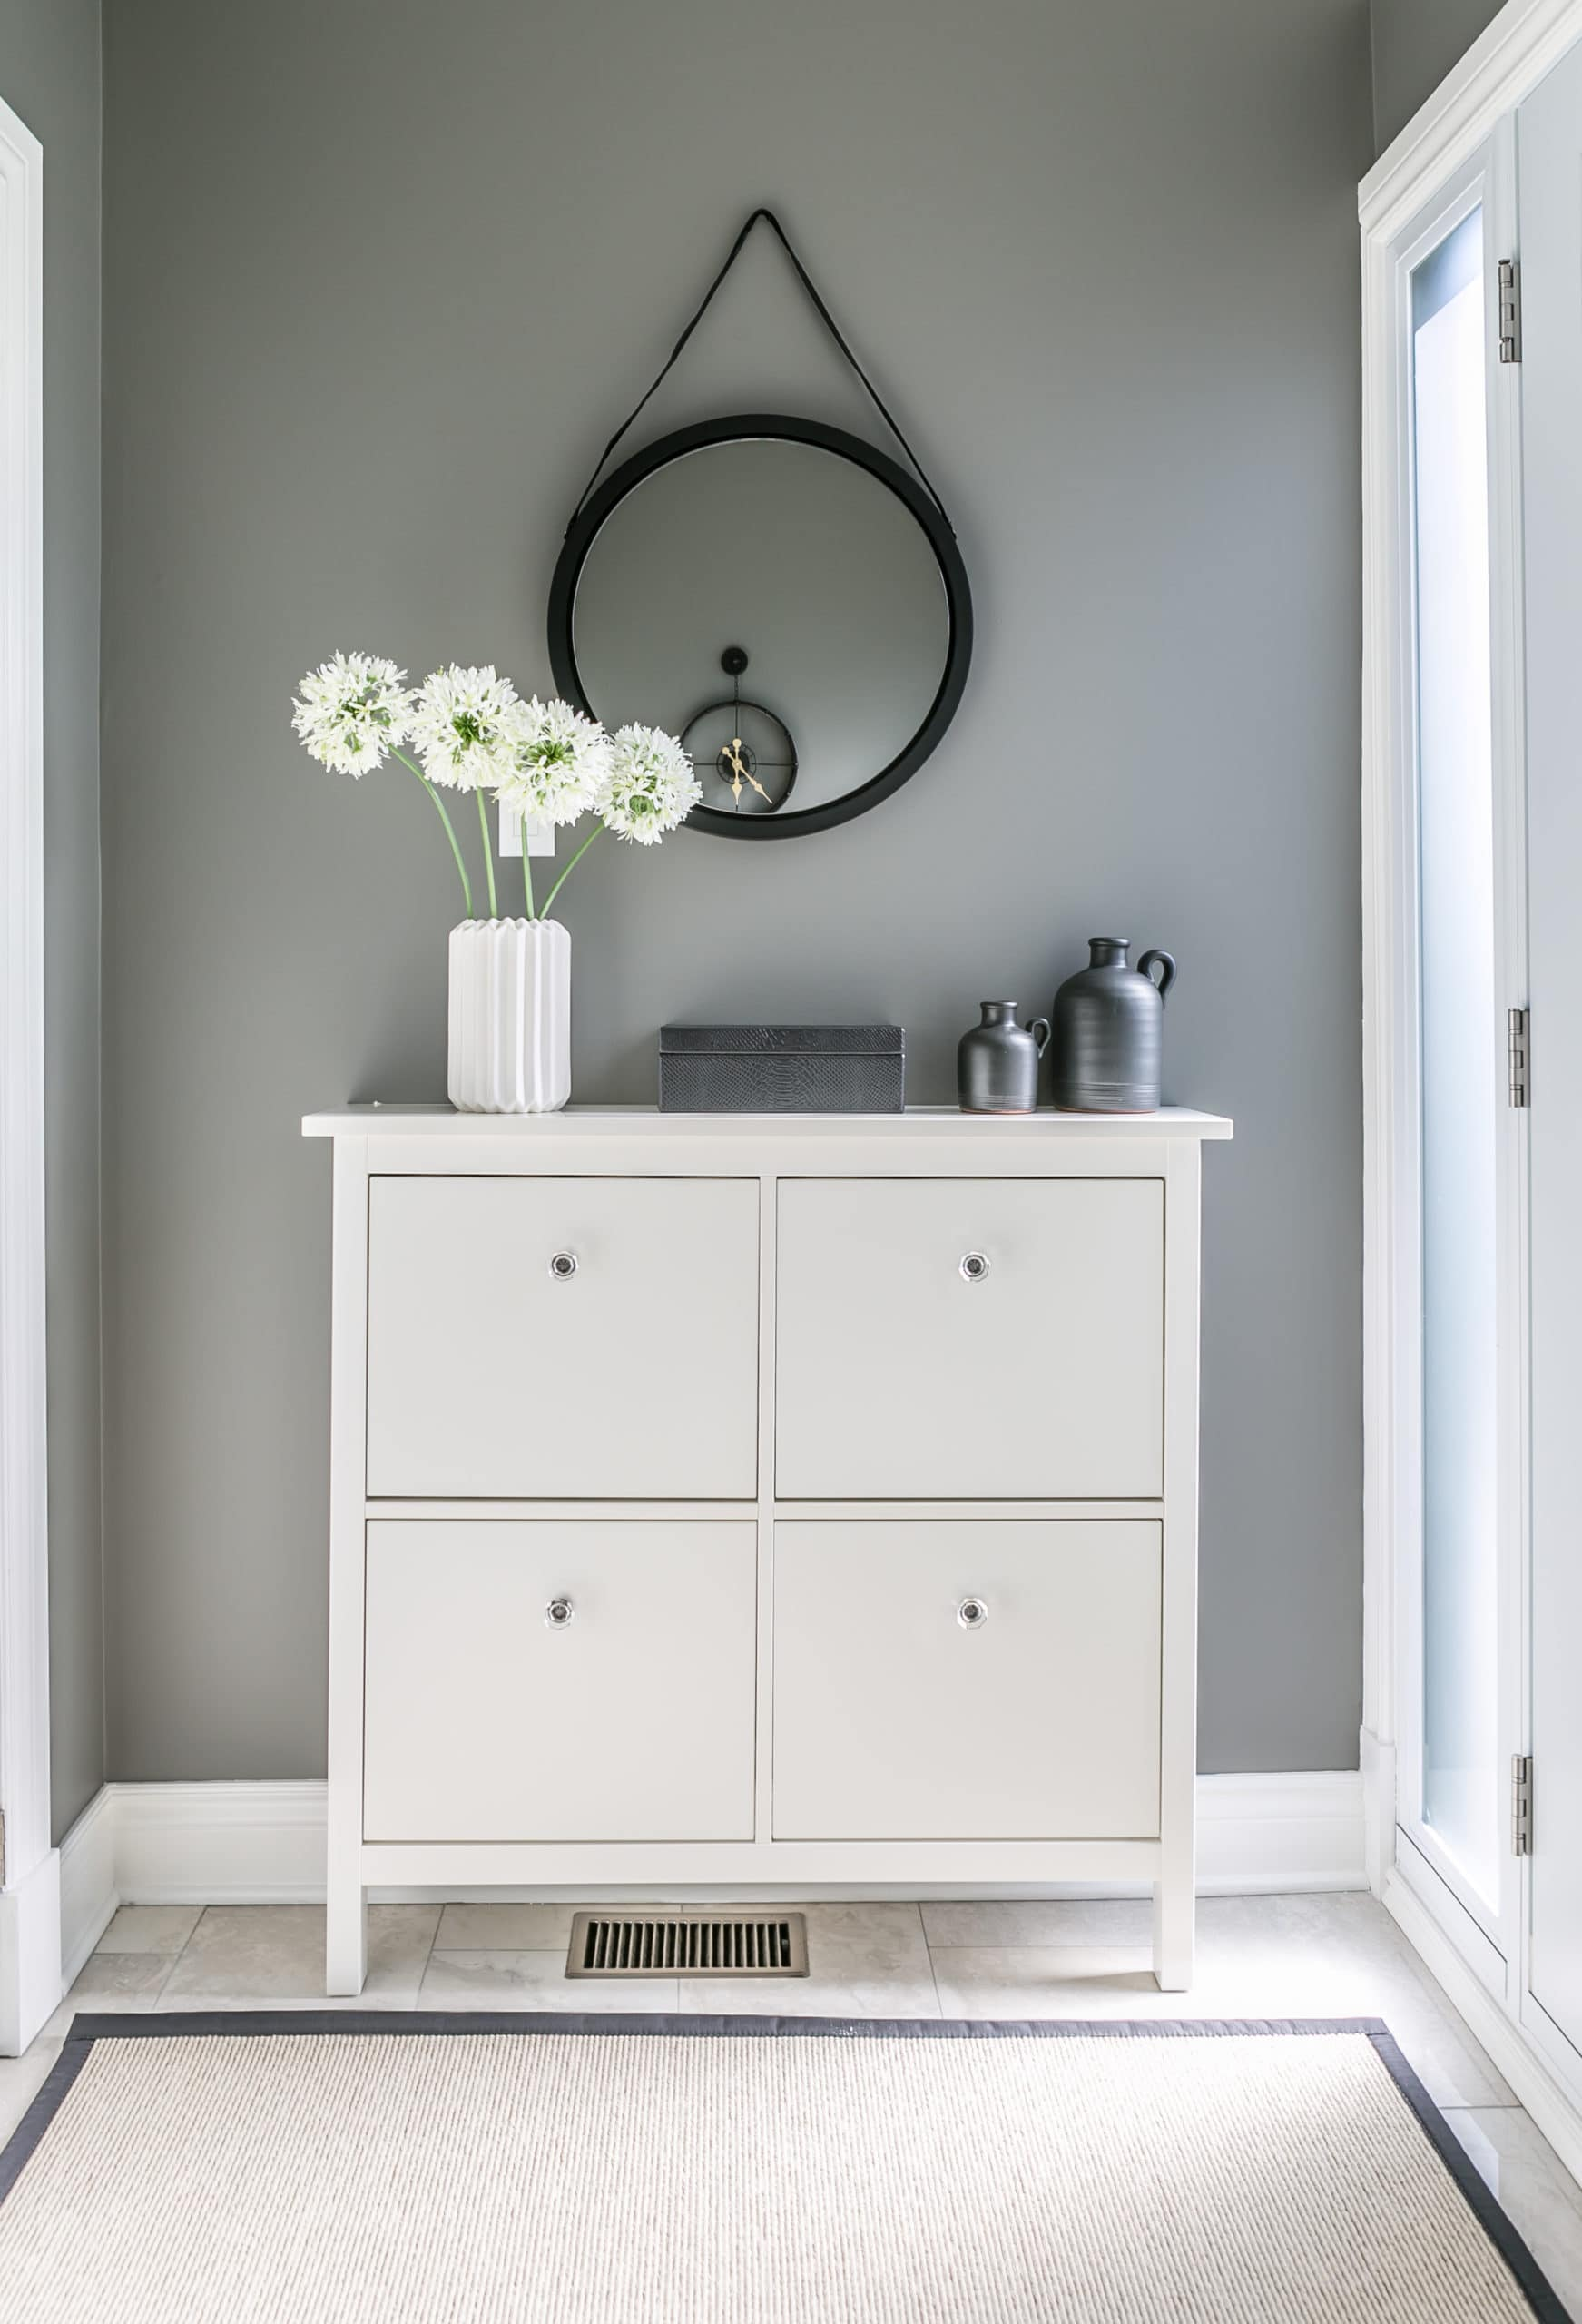 Beautiful white flowers on a small shelving unit at the end of a hallway